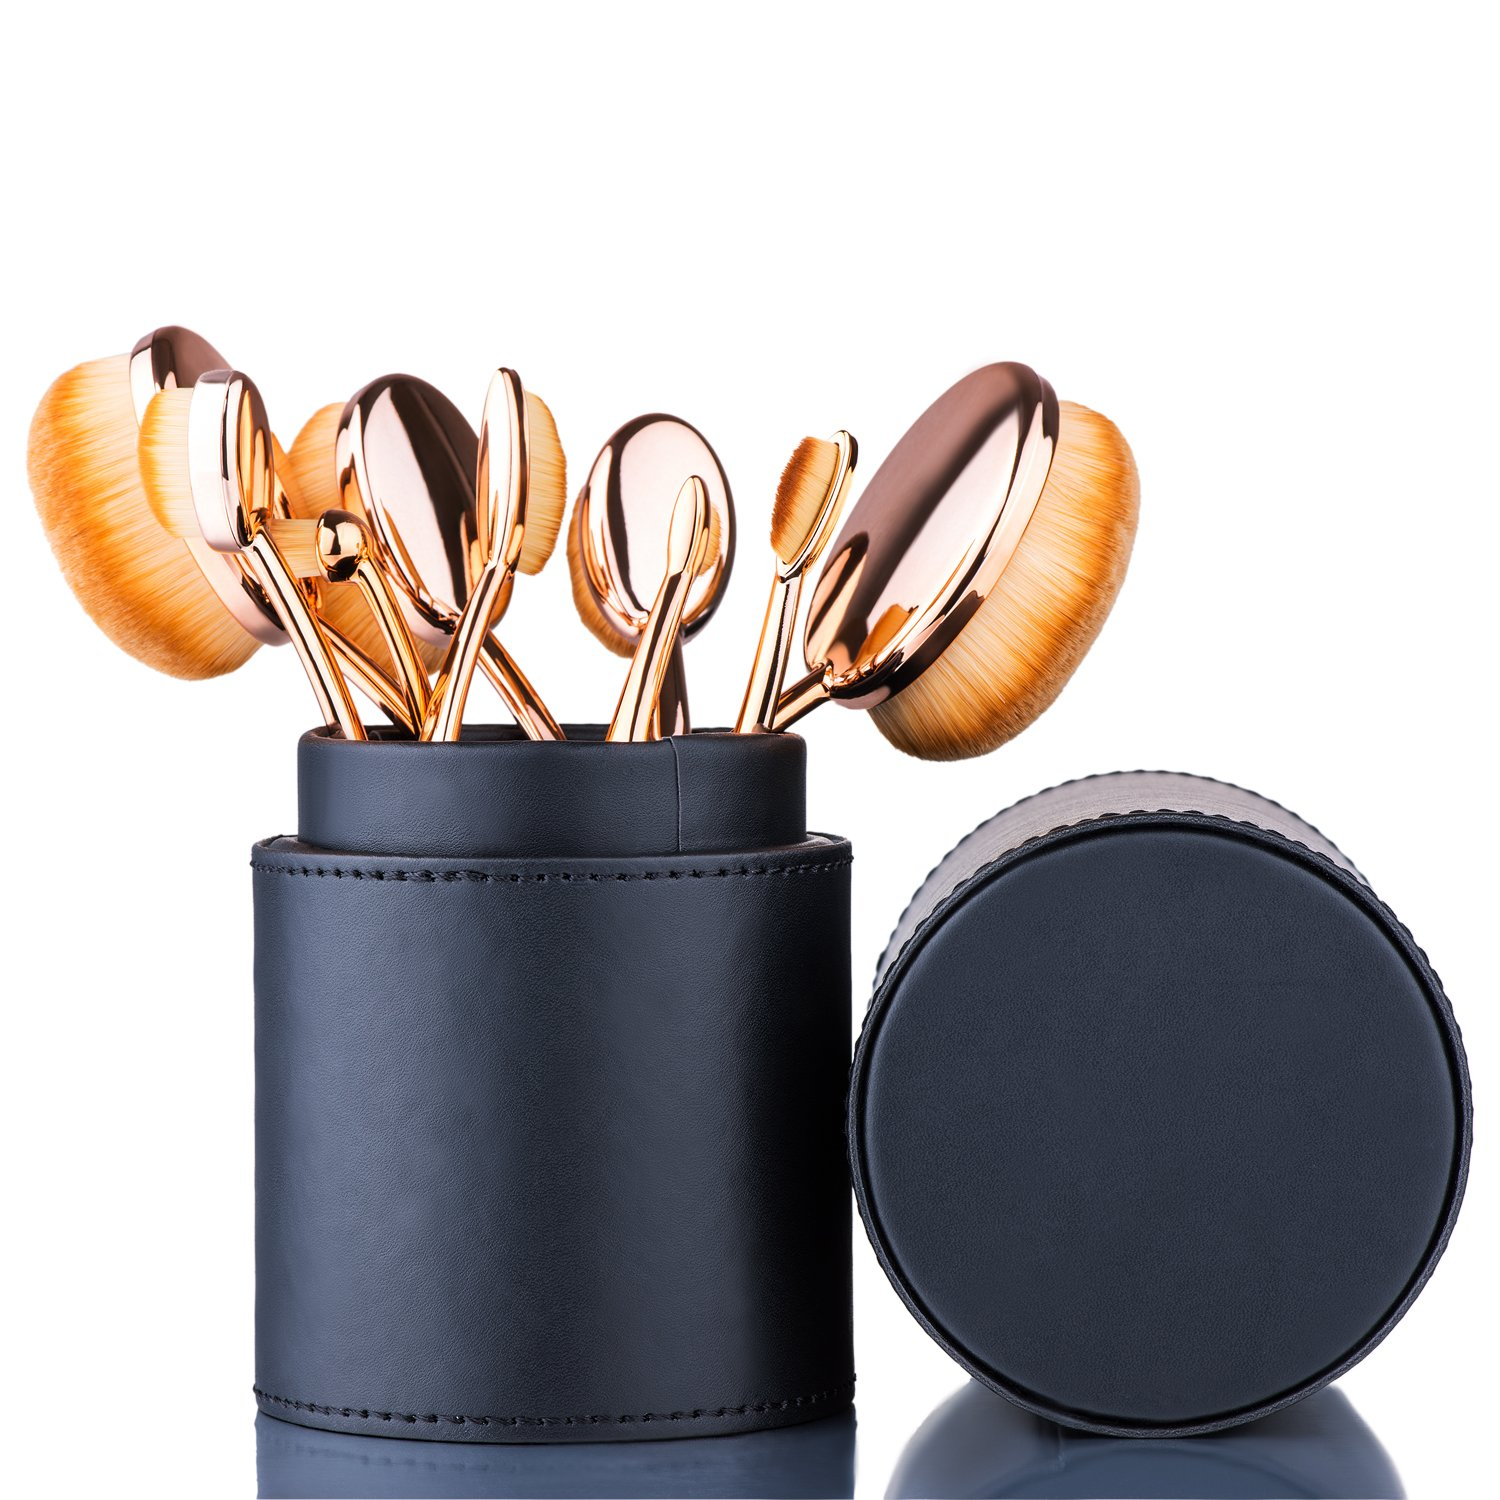 Oval Makeup Brush Set Toothbrush (Rose Gold Black)+ Makeup Organizer Brush Holder PU Leather by Beauty Kate